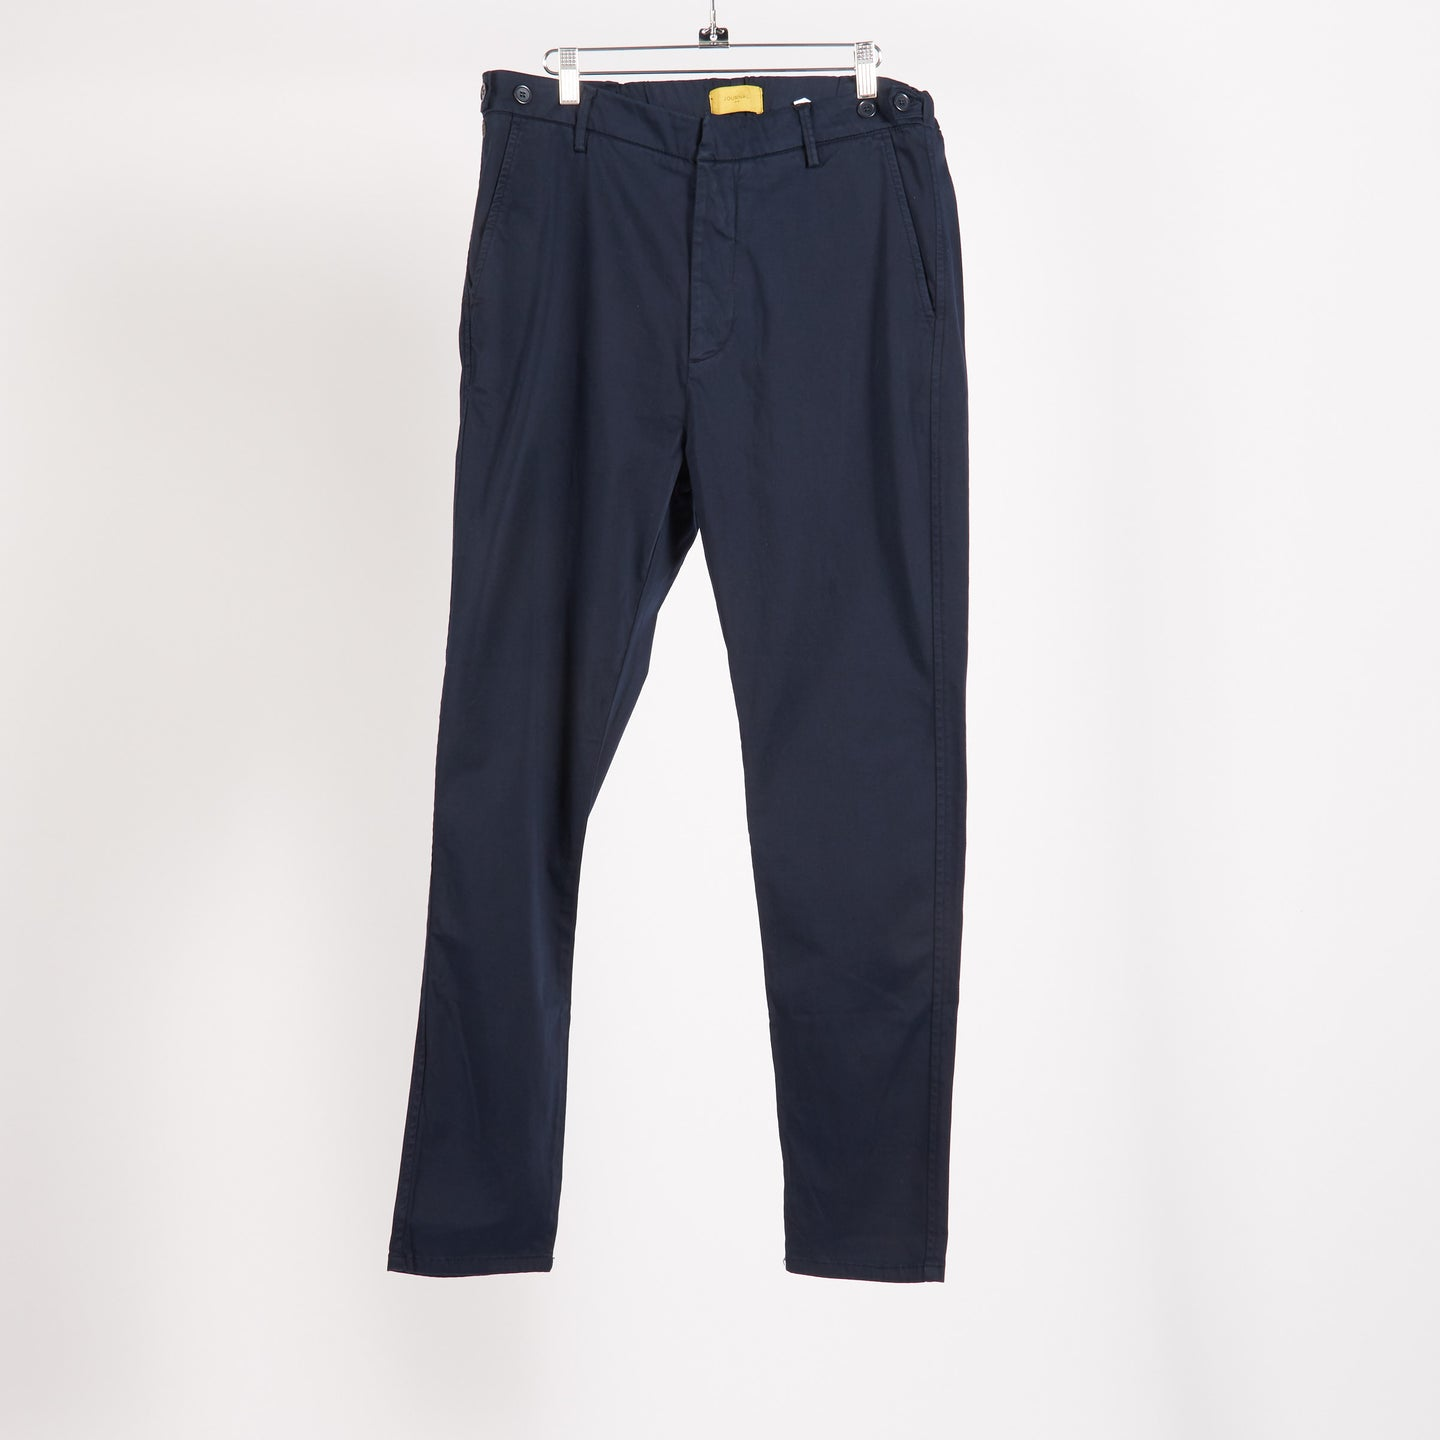 Navy Chinos (Size 32)